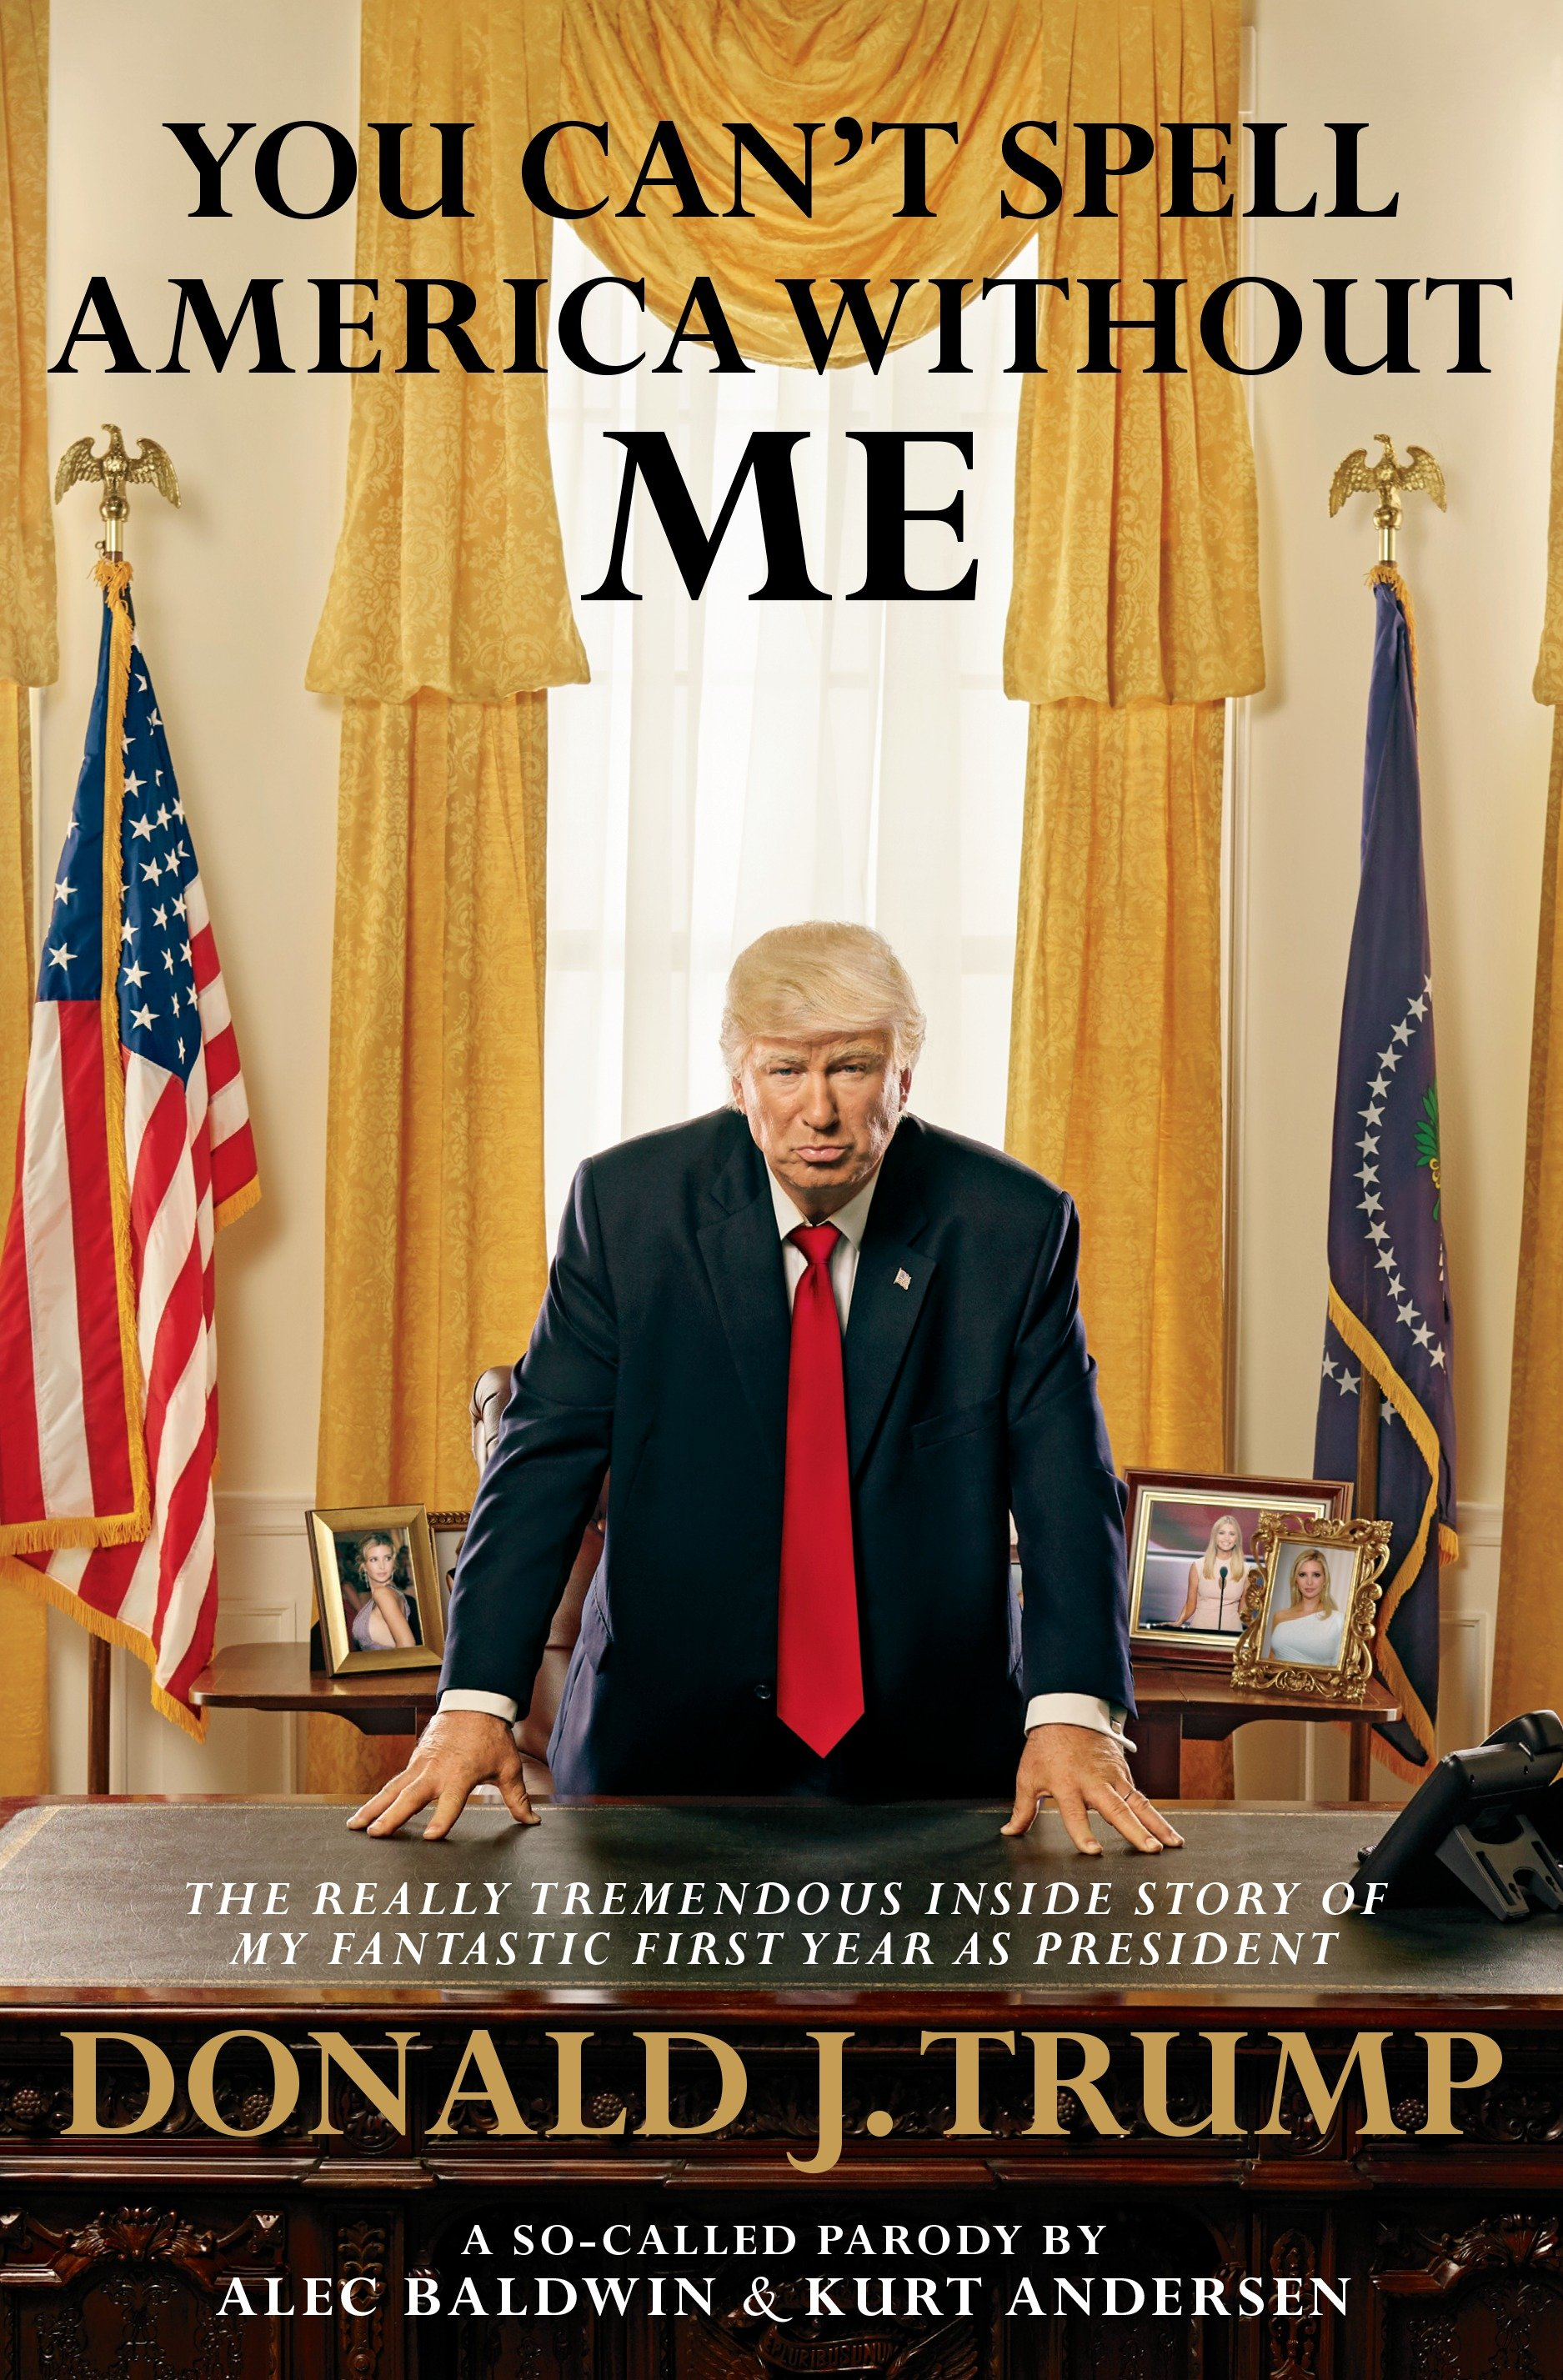 You Can't Spell America Without Me [EBOOK] The Really Tremendous Inside Story of My Fantastic First Year as President Donald J. Trump (A So-Called Parody)